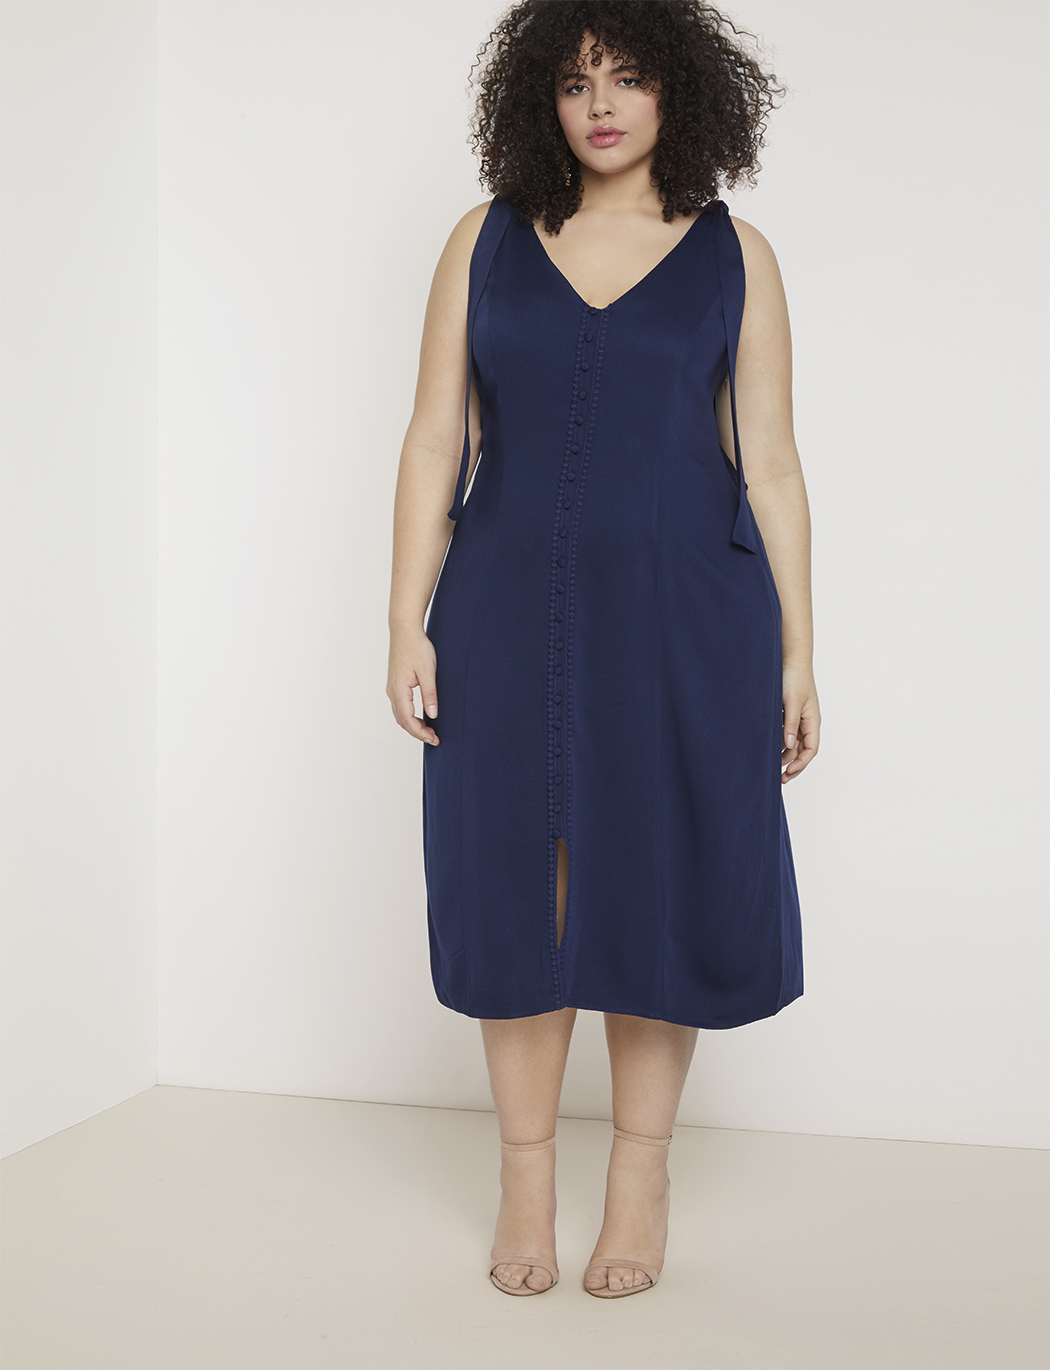 Button Front Midi Dress | Women\'s Plus Size Dresses | ELOQUII